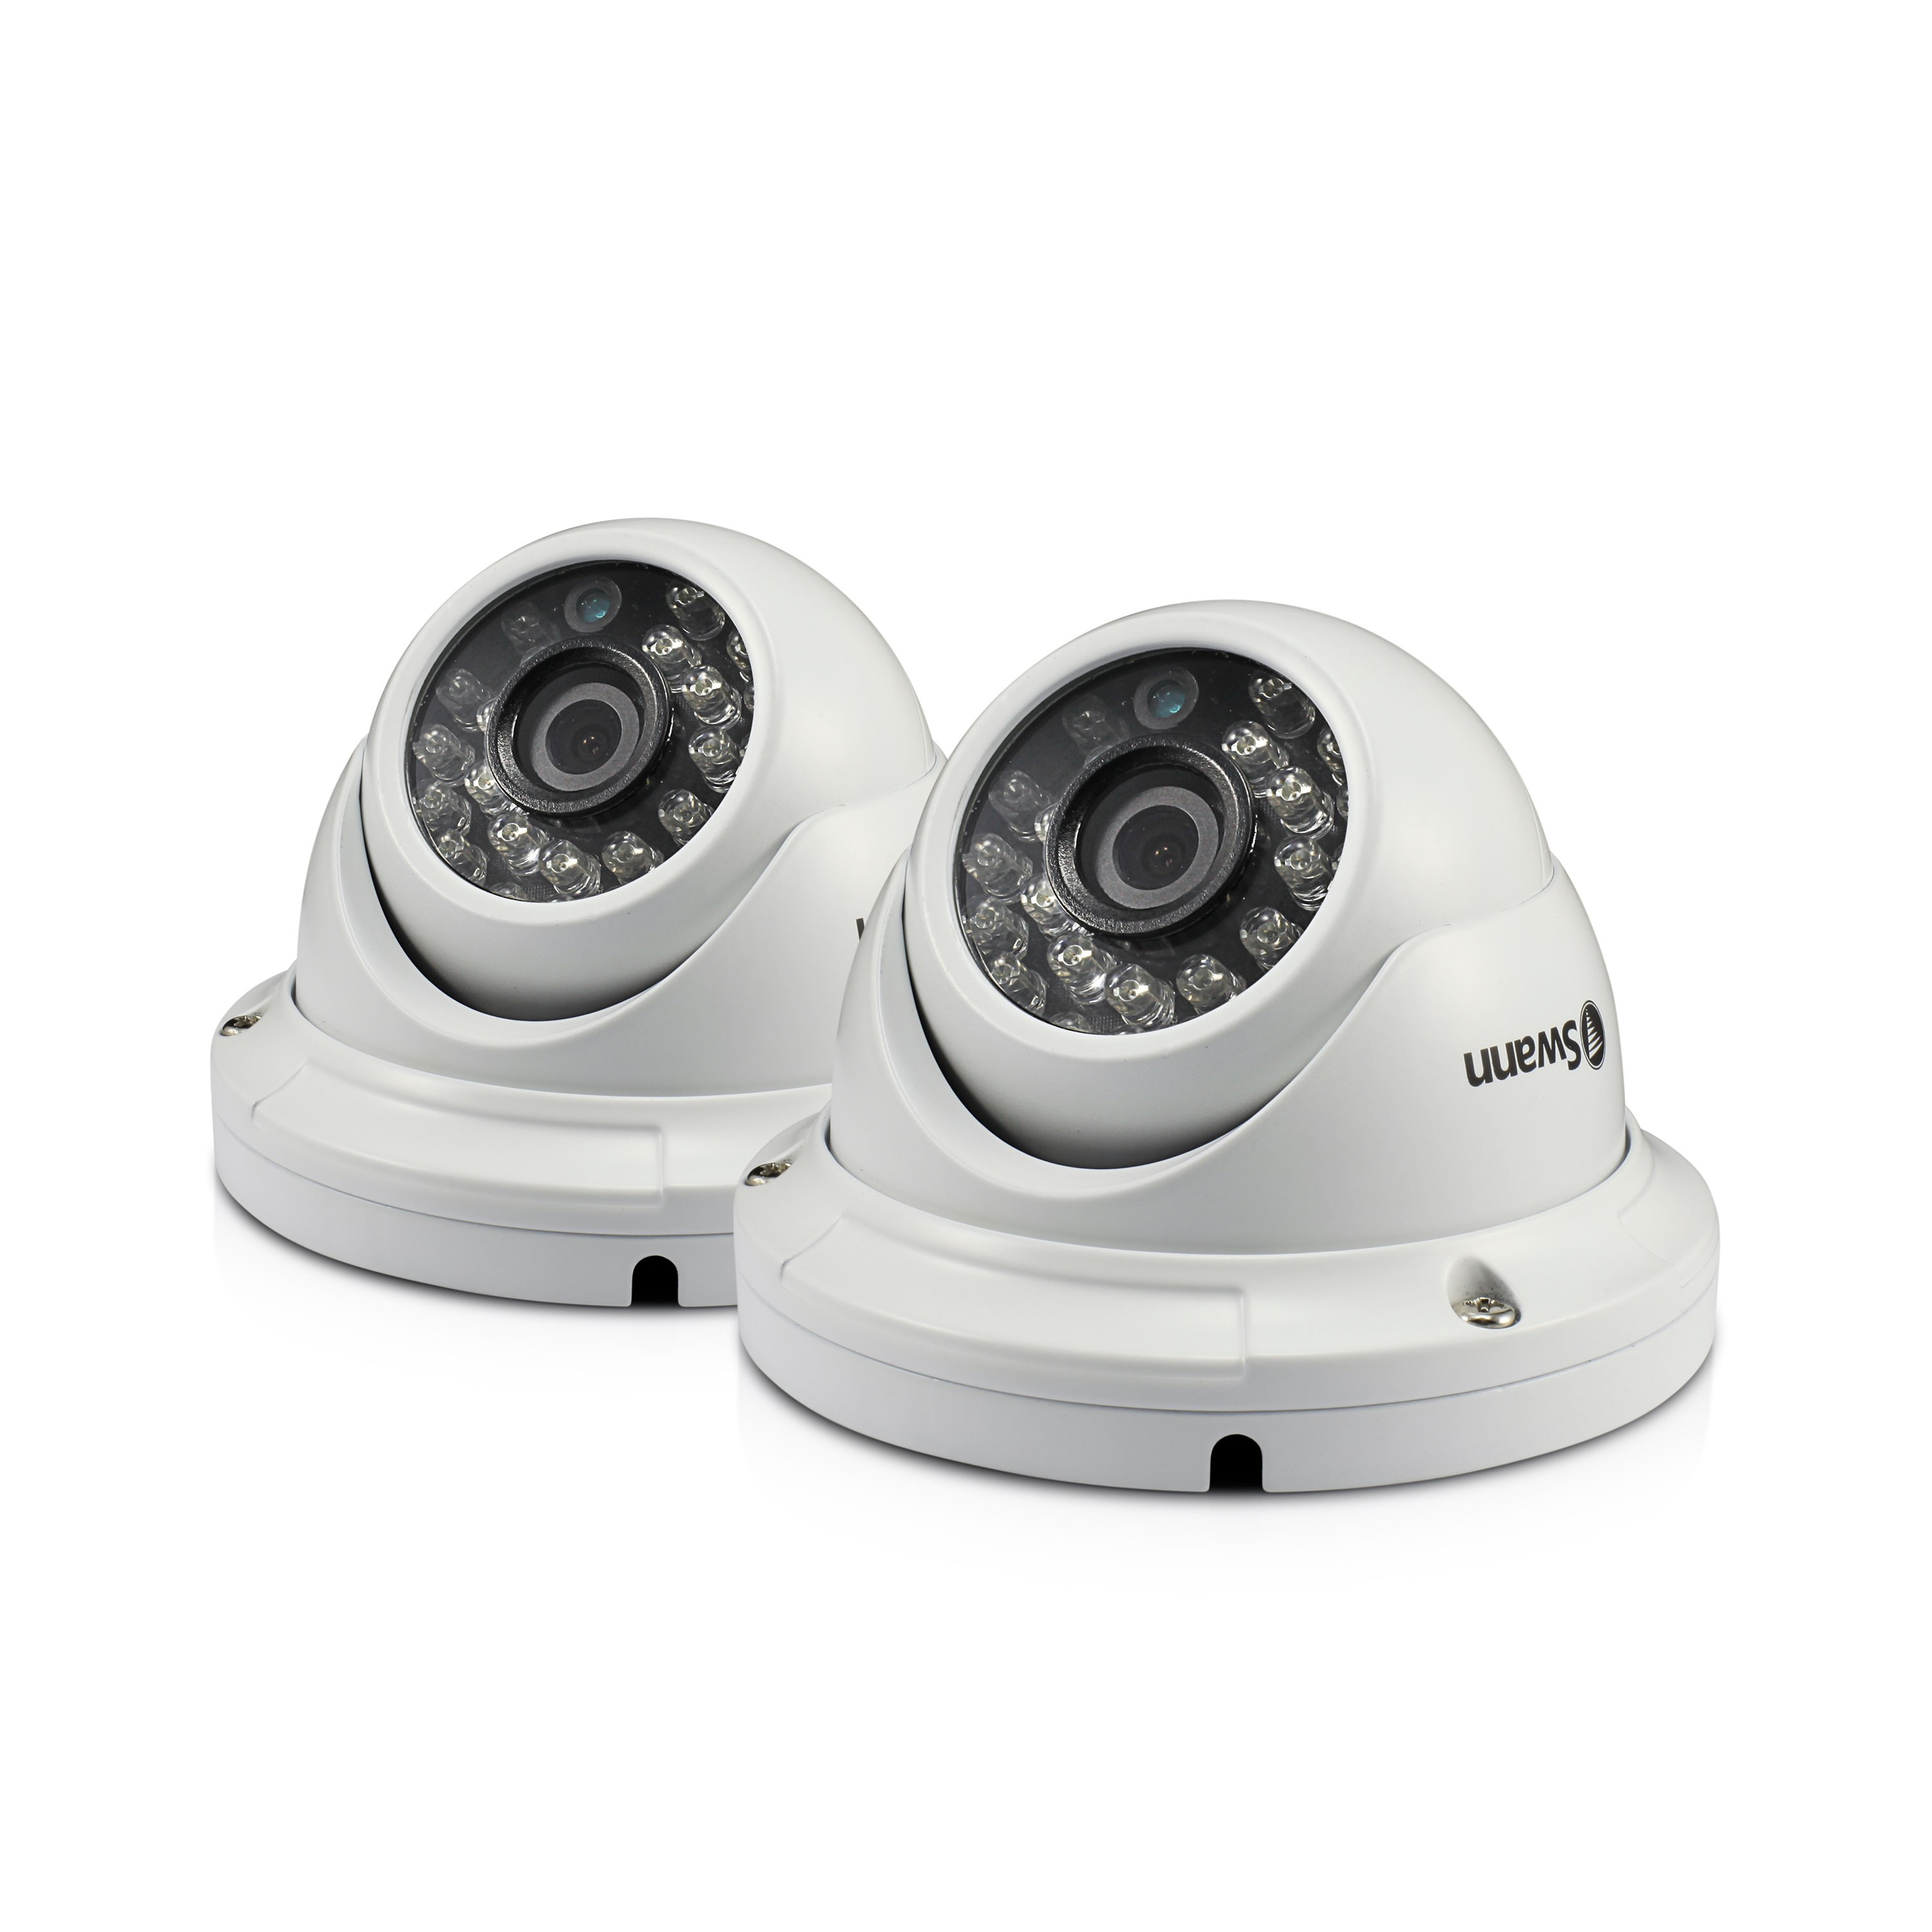 SWPRO-H856PK2 Swann Outdoor Security Cameras 2 Pack: 1080p Full HD Dome with IR Night Vision - PRO-H856 -